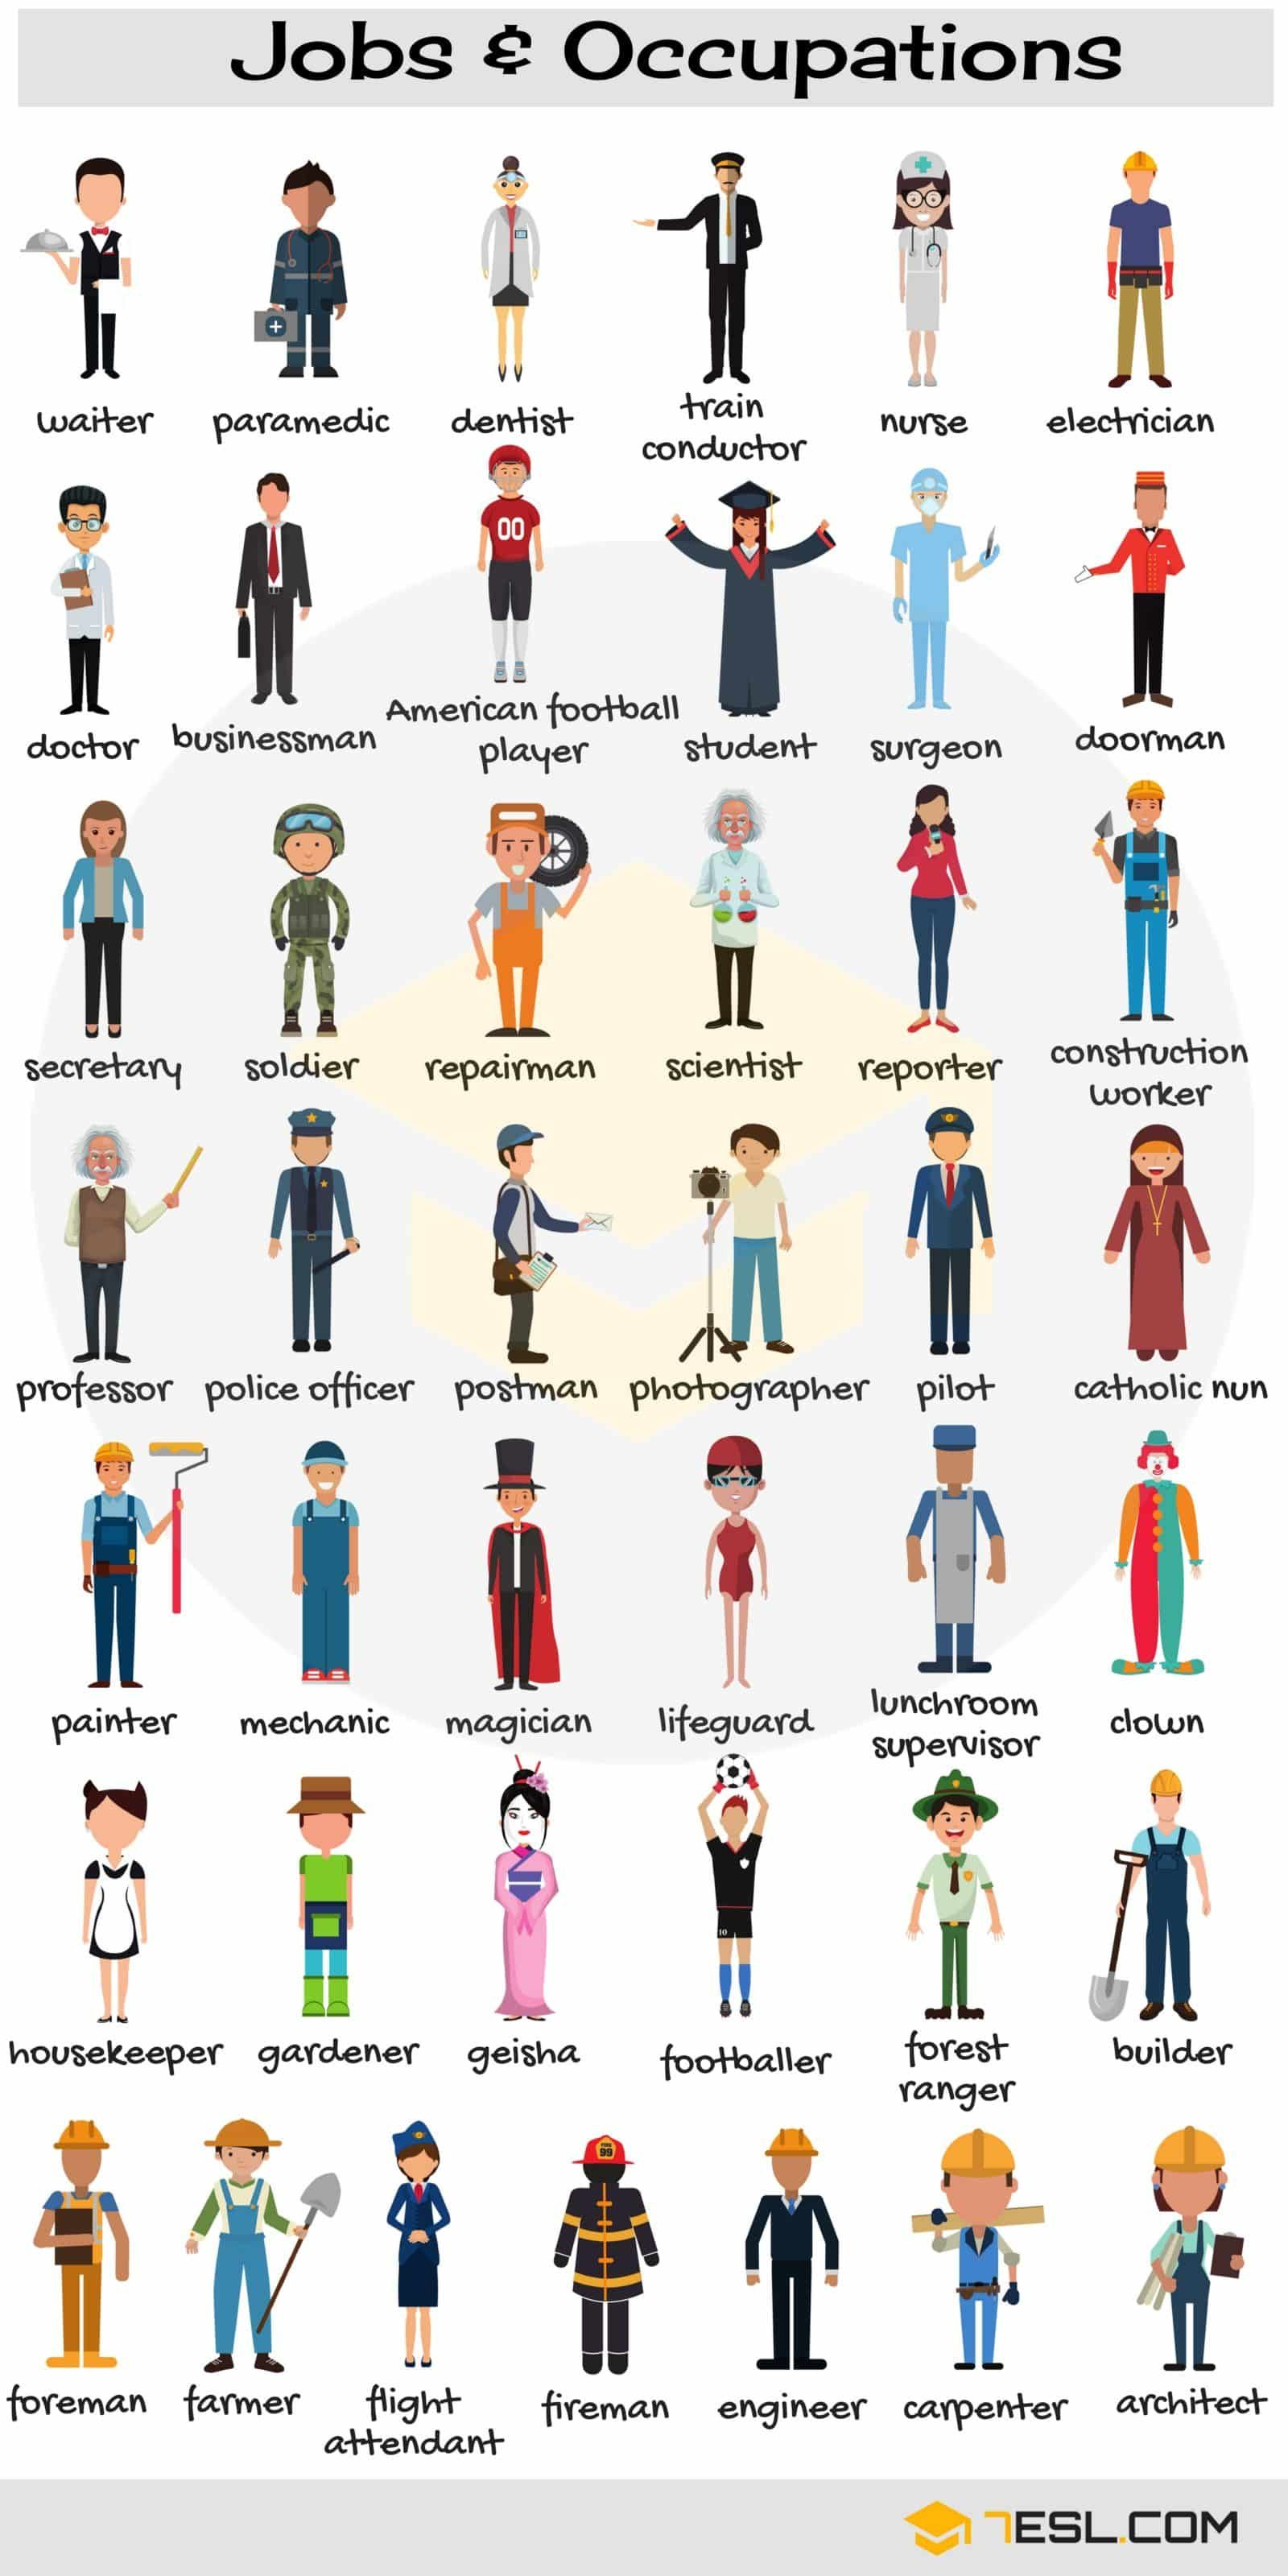 Learn Jobs and Occupations Vocabulary through Pictures - ESLBuzz Learning English